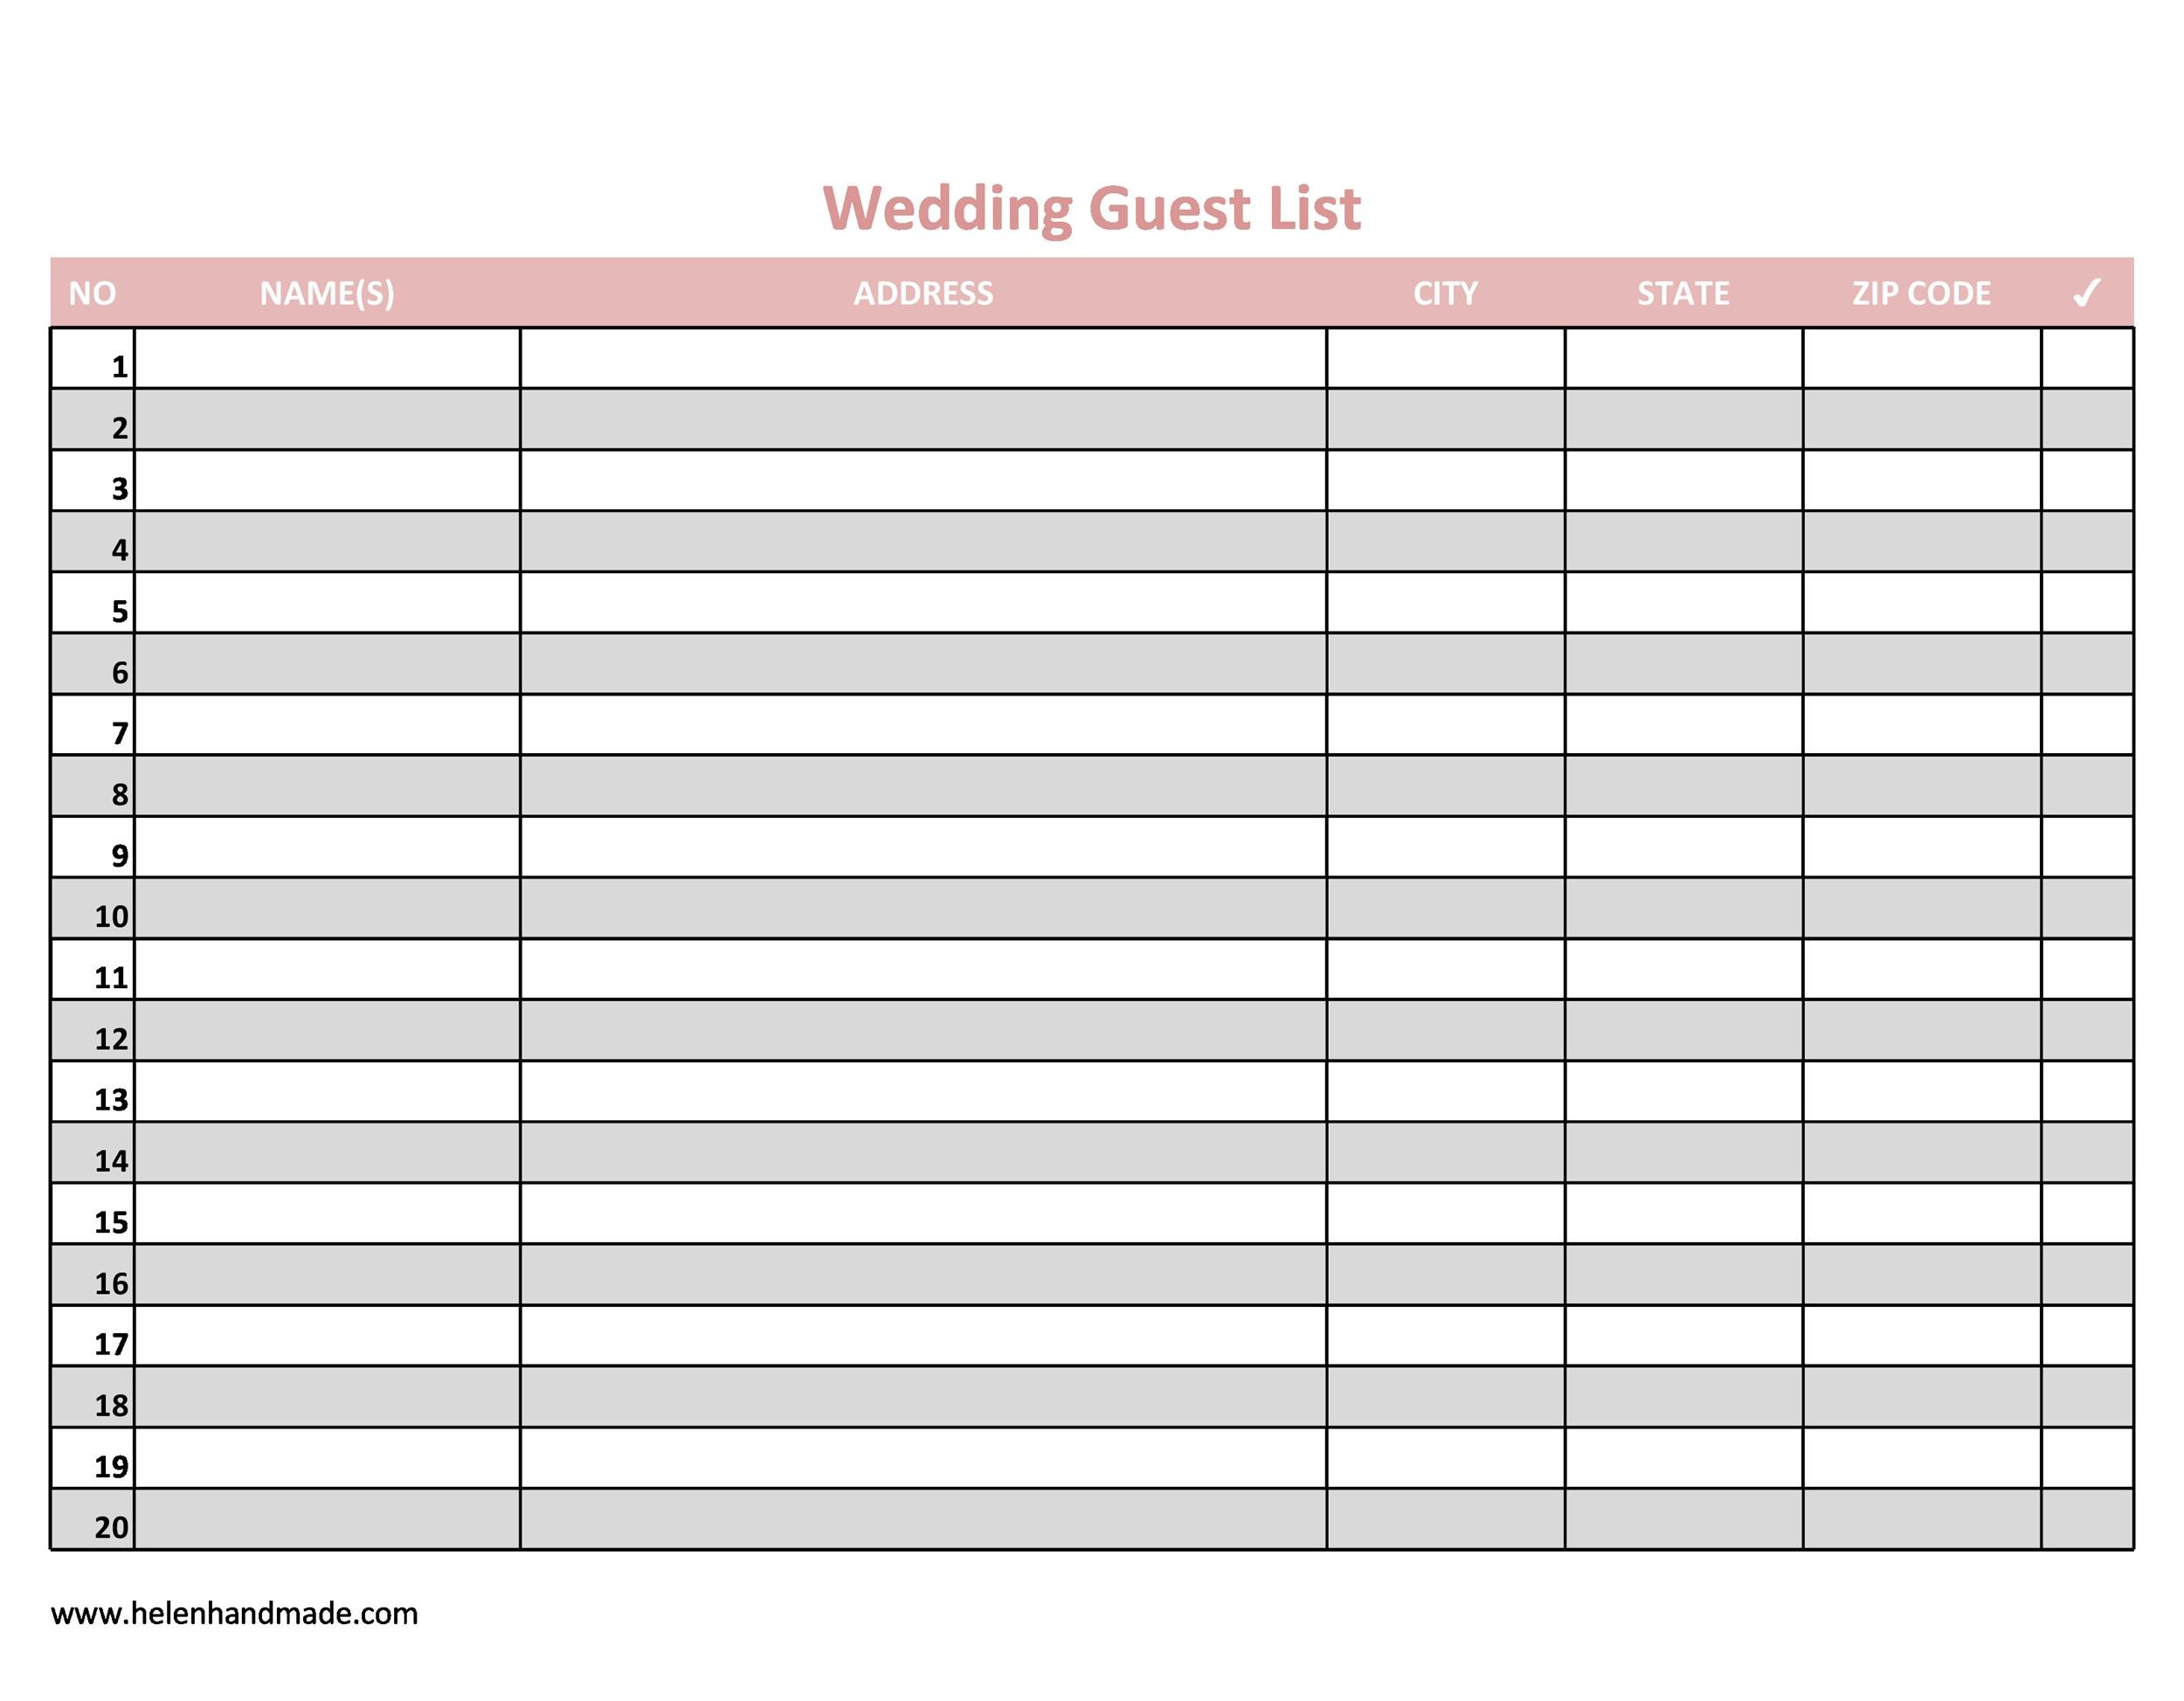 Wedding Guest List Template Free Beautiful Wedding Guest List